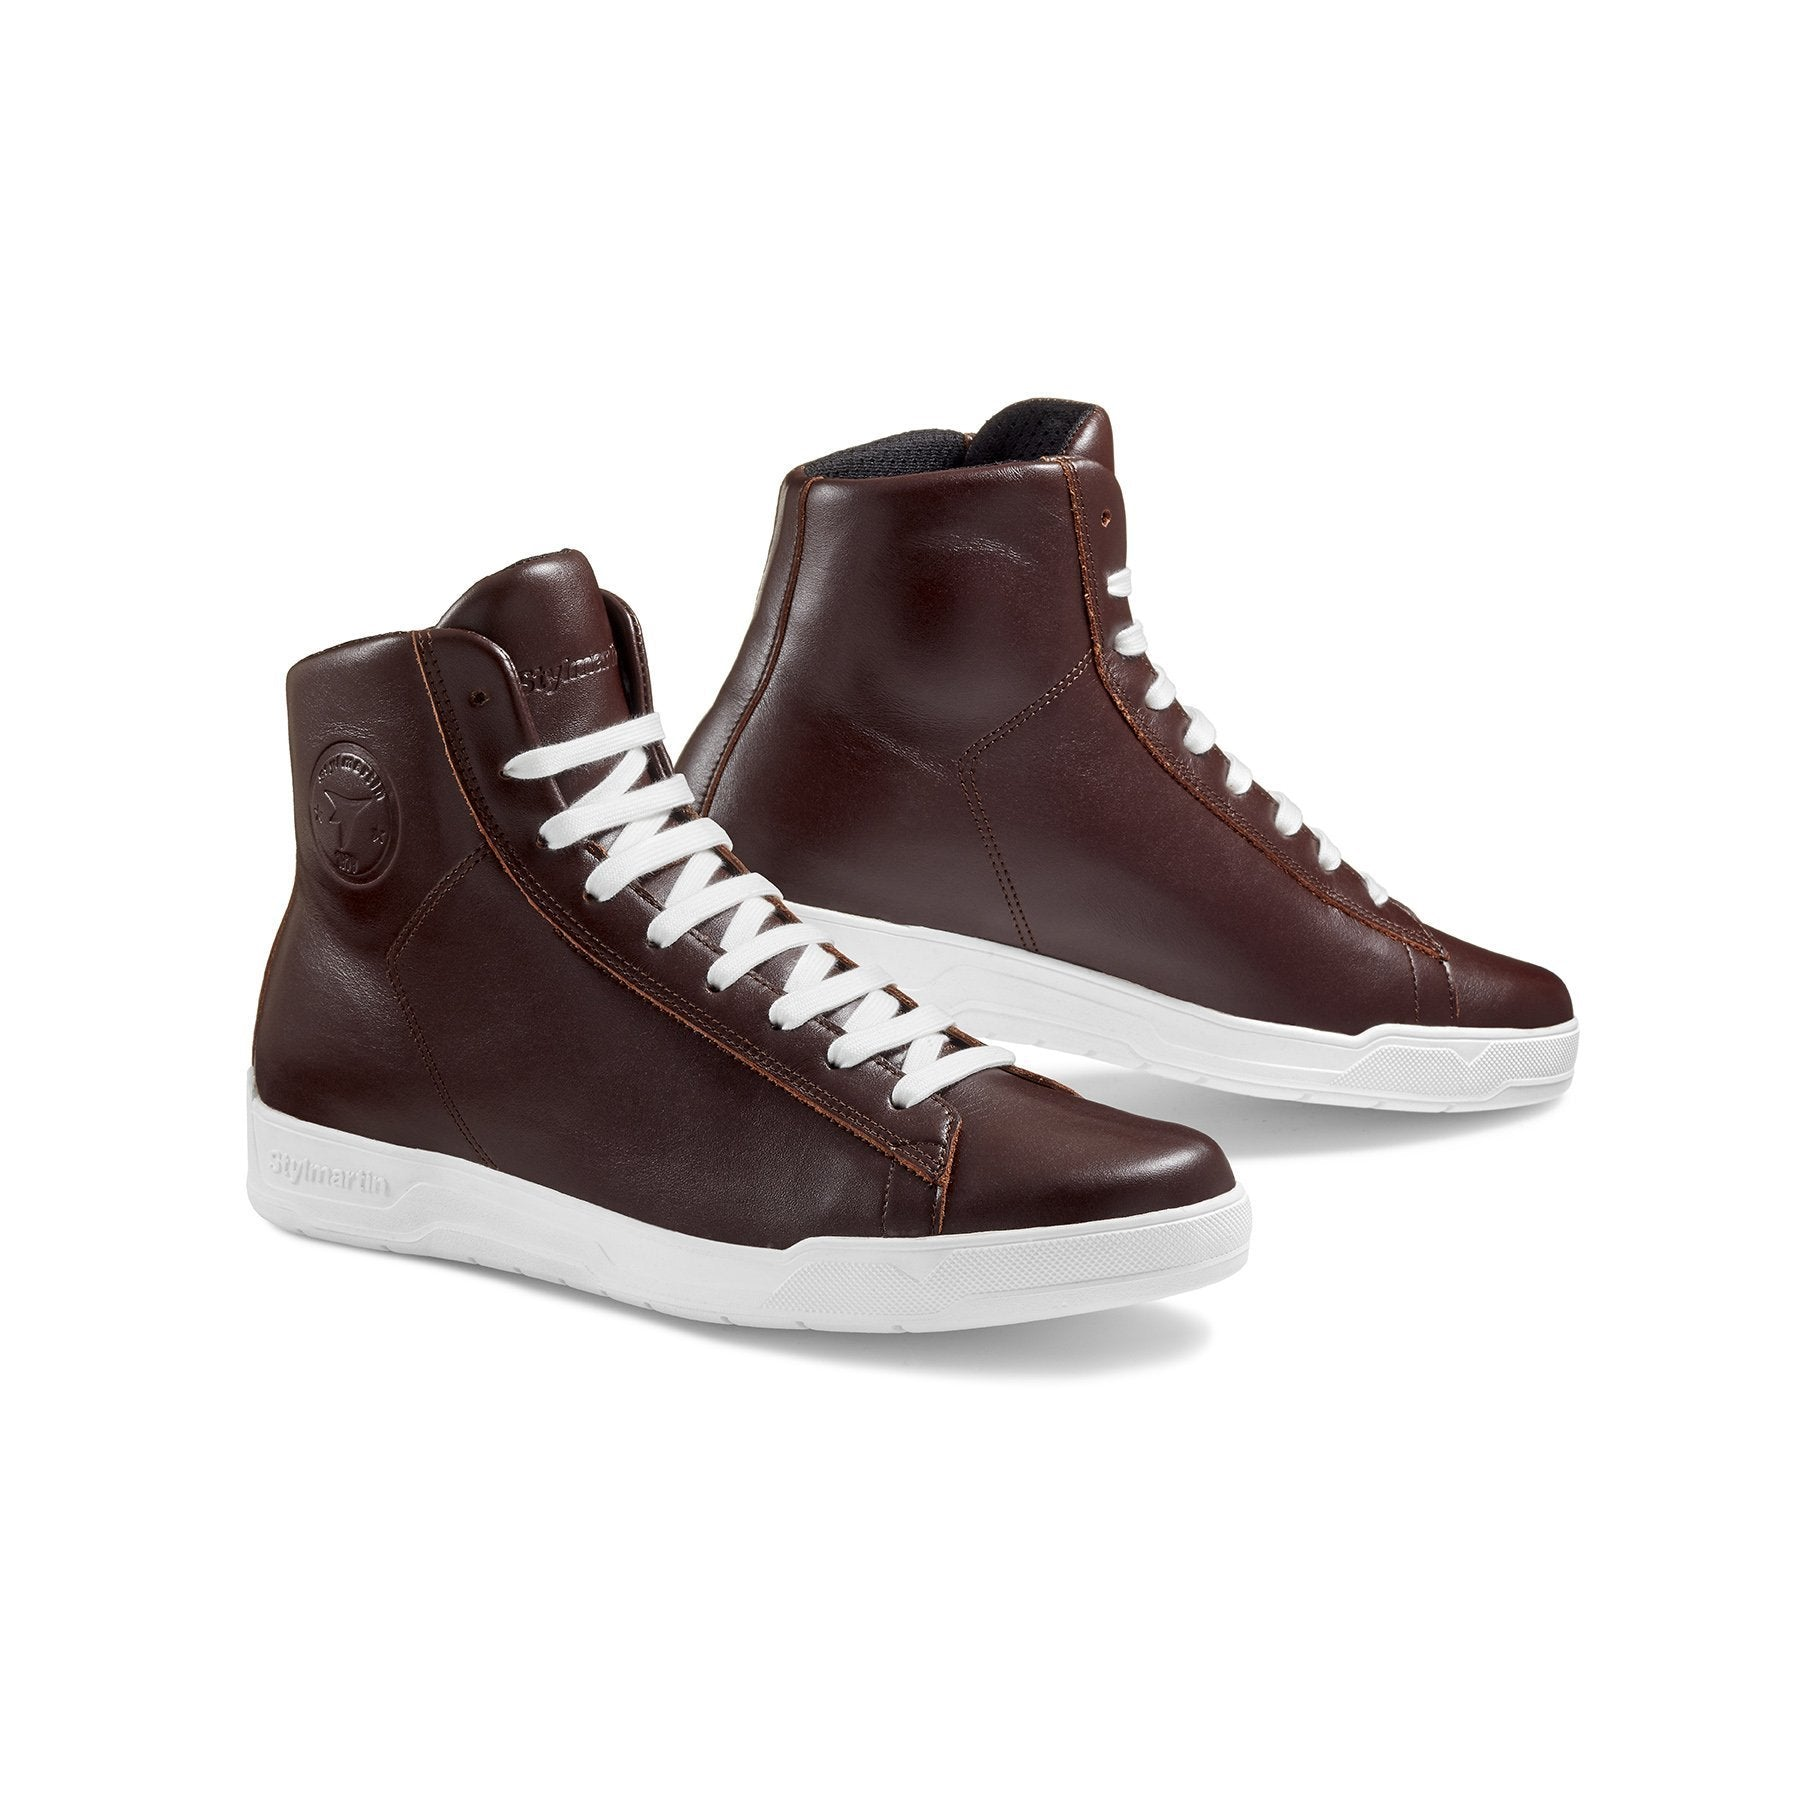 Stylmartin - Stylmartin Core WP Sneaker in Brown - Boots - Salt Flats Clothing